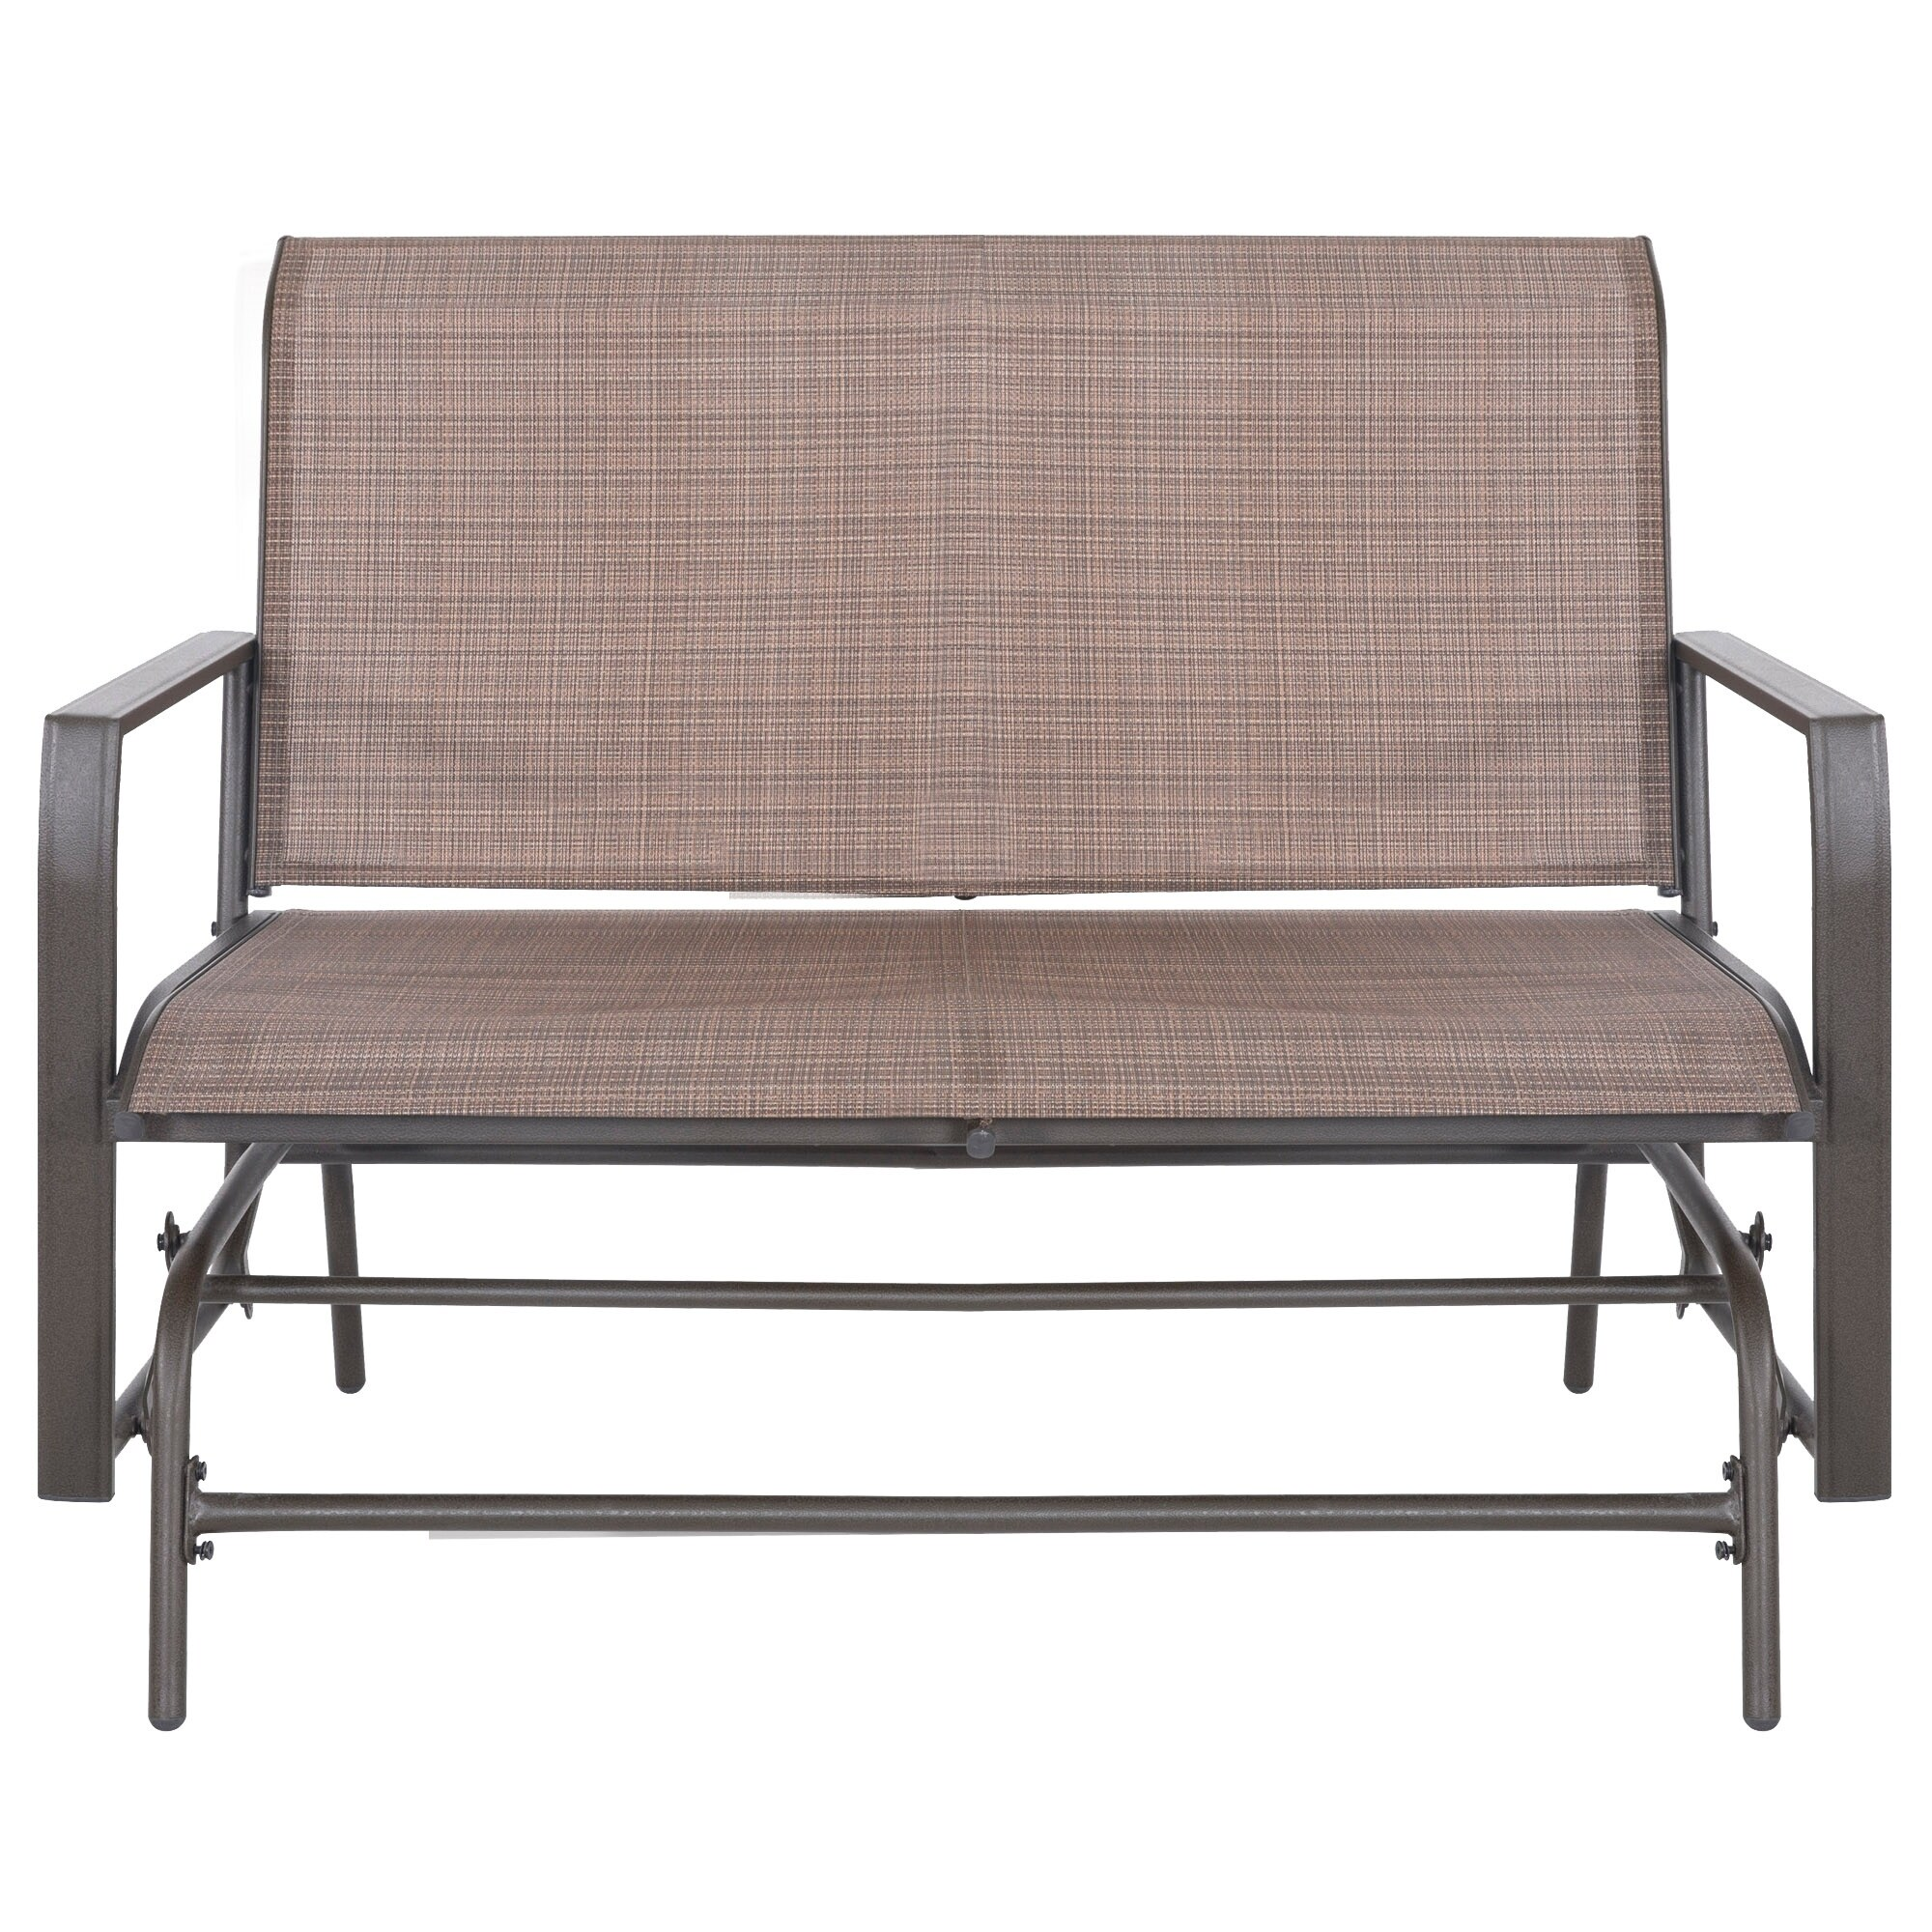 Patio Glider Bench Outdoor 2 Person Swing Loveseat Rocking Seating Rocker Lounge Chair Tan On Free Shipping Today